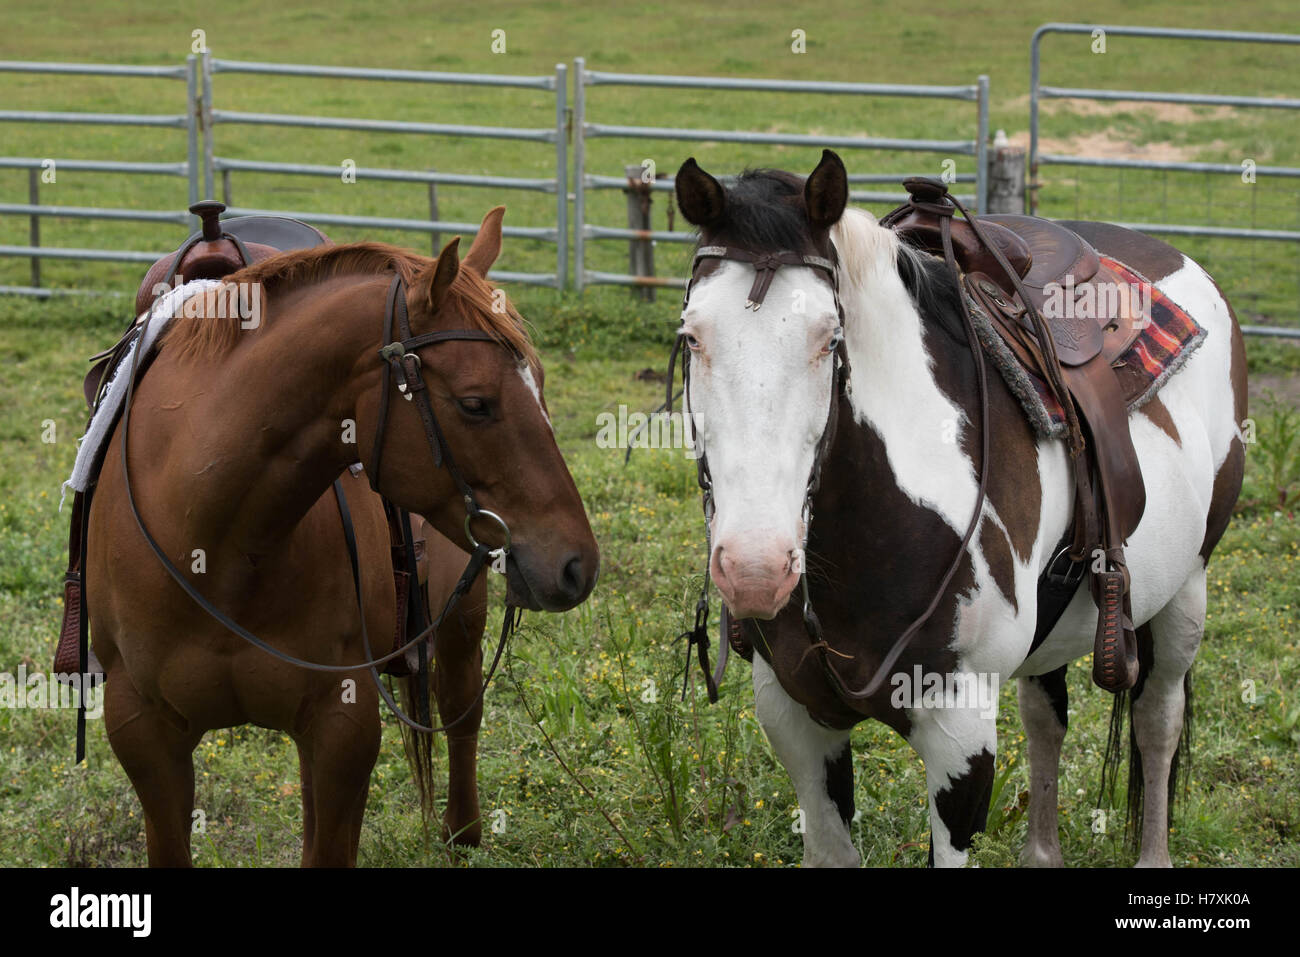 2 Horses Saddled In The Yards Ready For Work